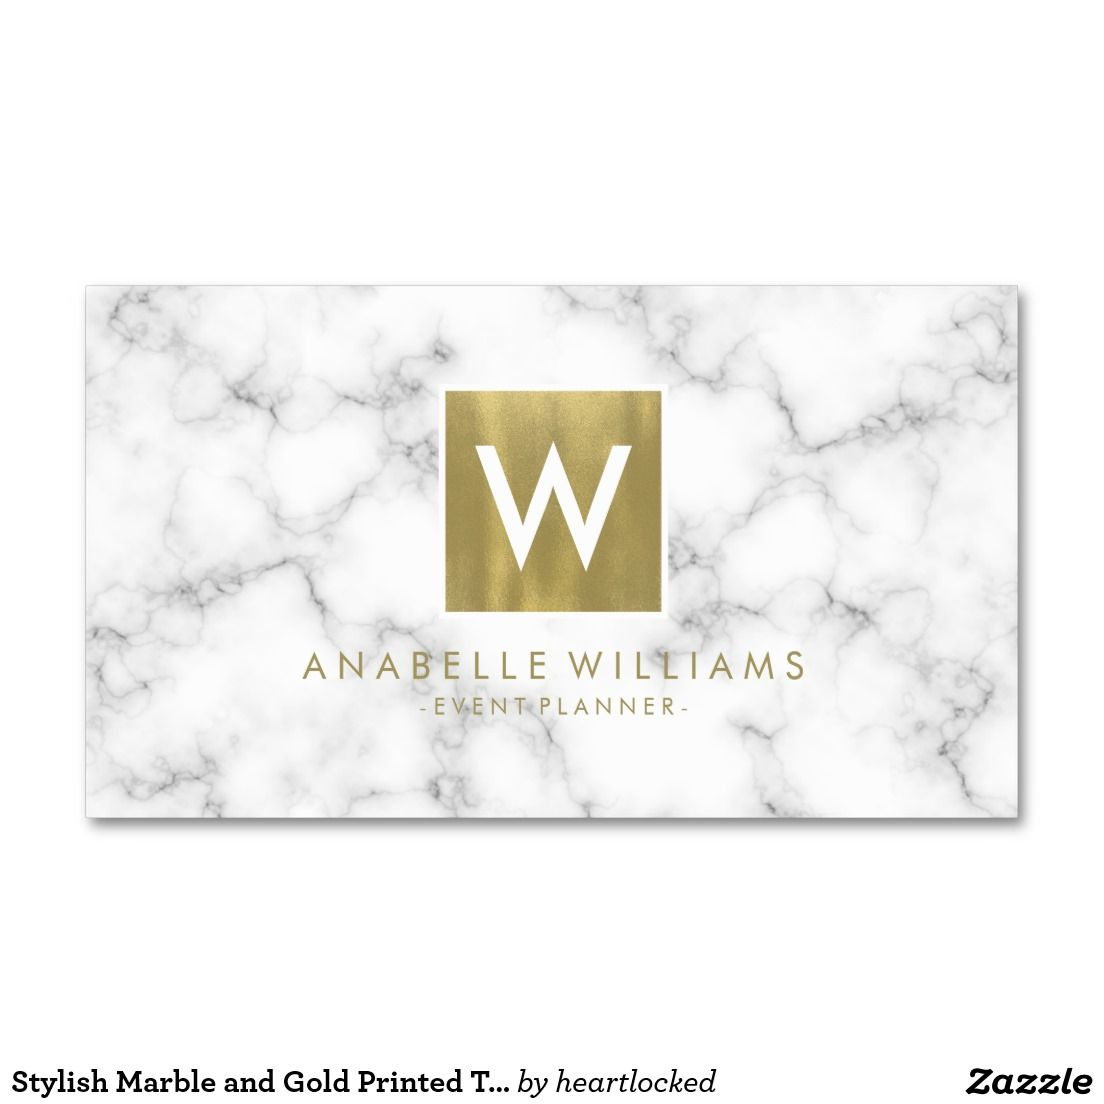 Stylish Marble And Gold Printed Texture Business Card Zazzle Com In 2021 Business Card Texture Business Card Inspiration Rose Gold Print